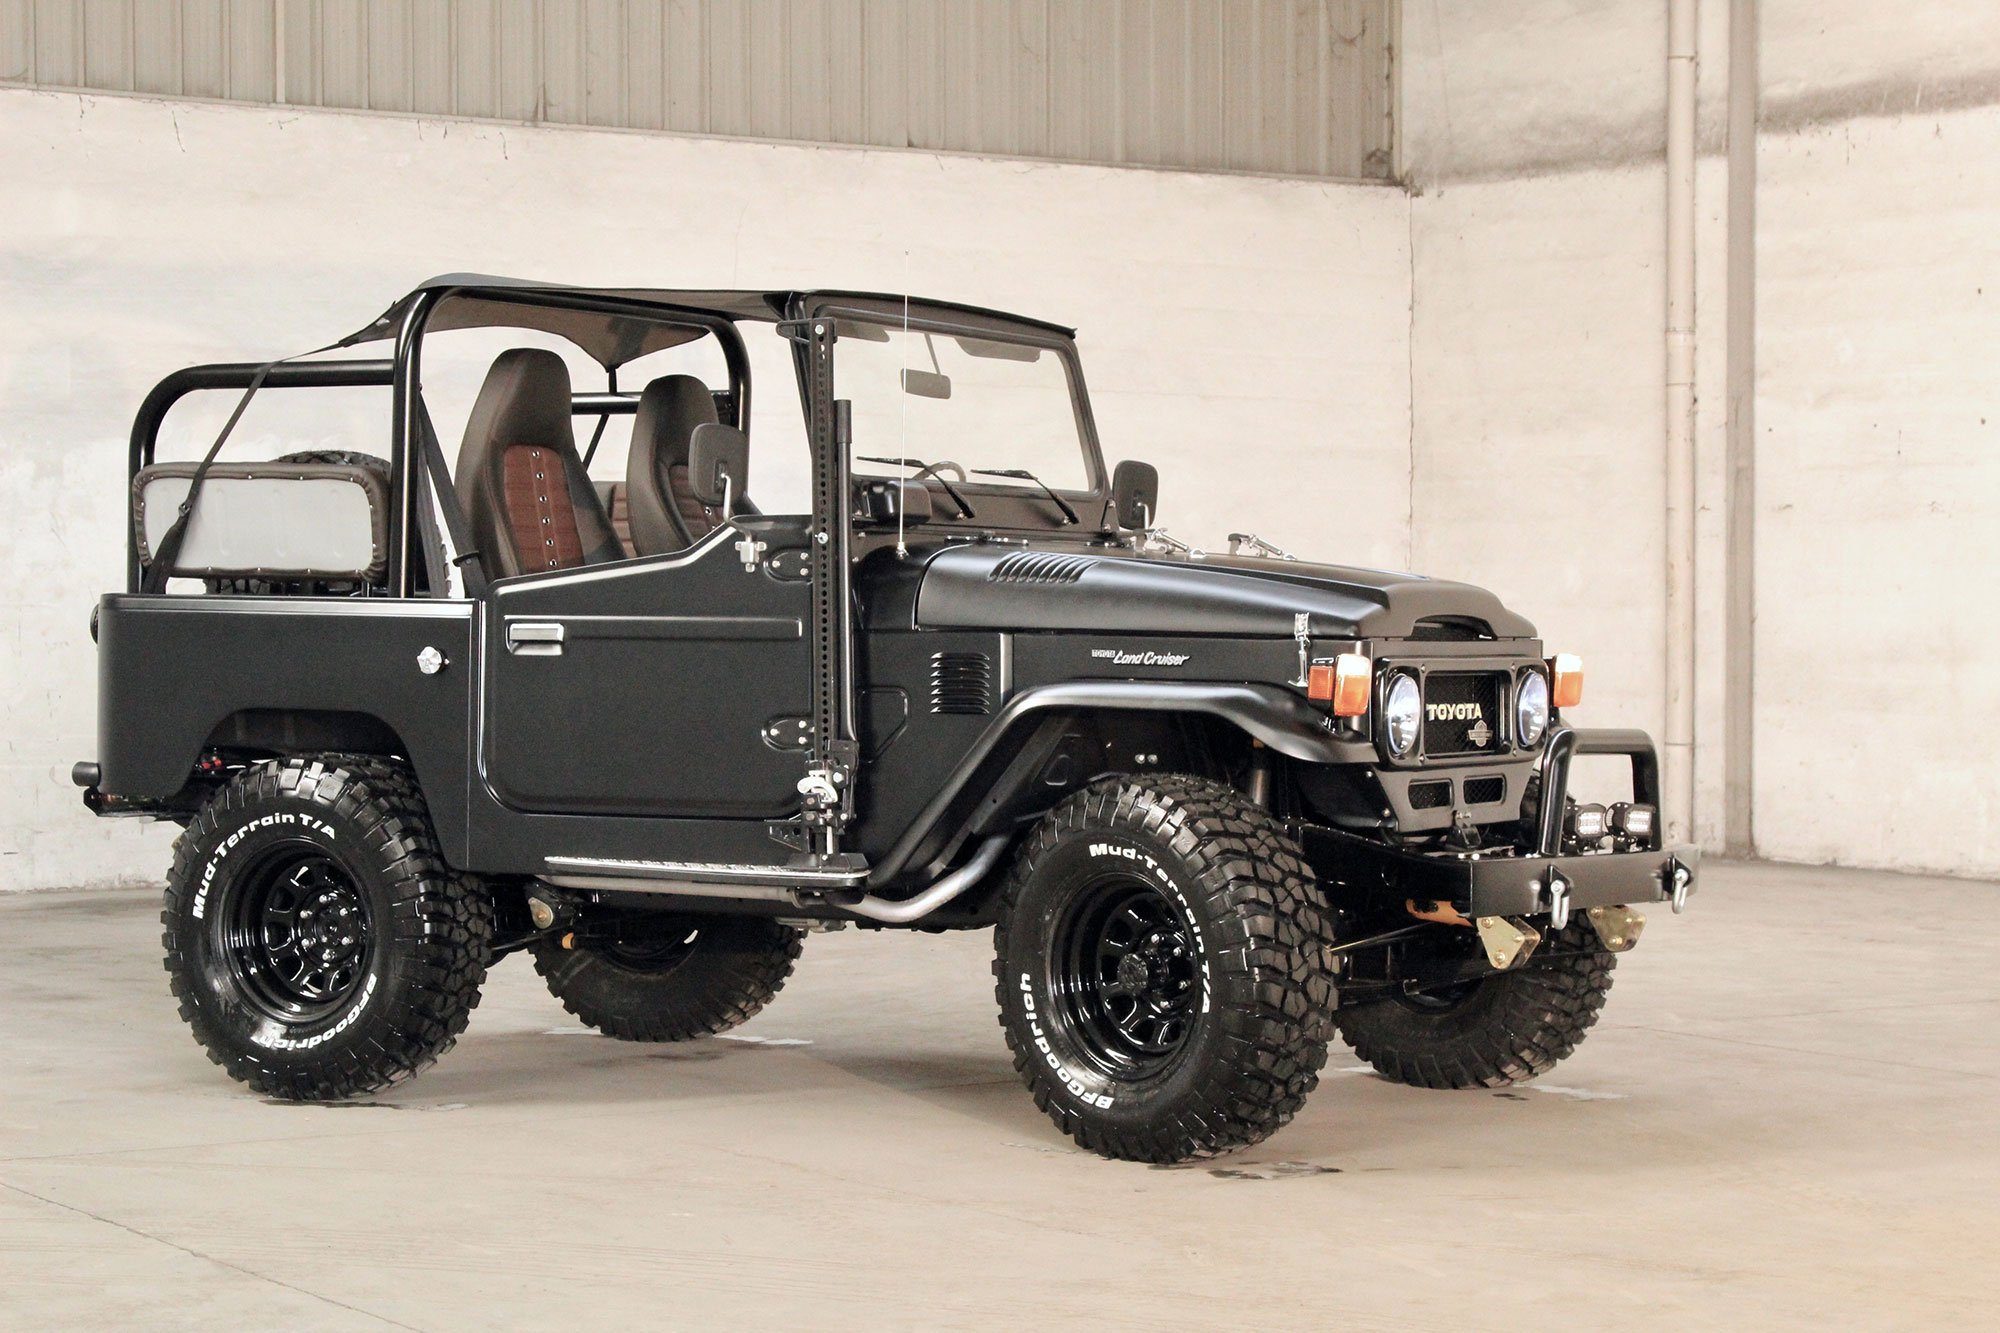 1960s Toyota Land Cruiser Custom